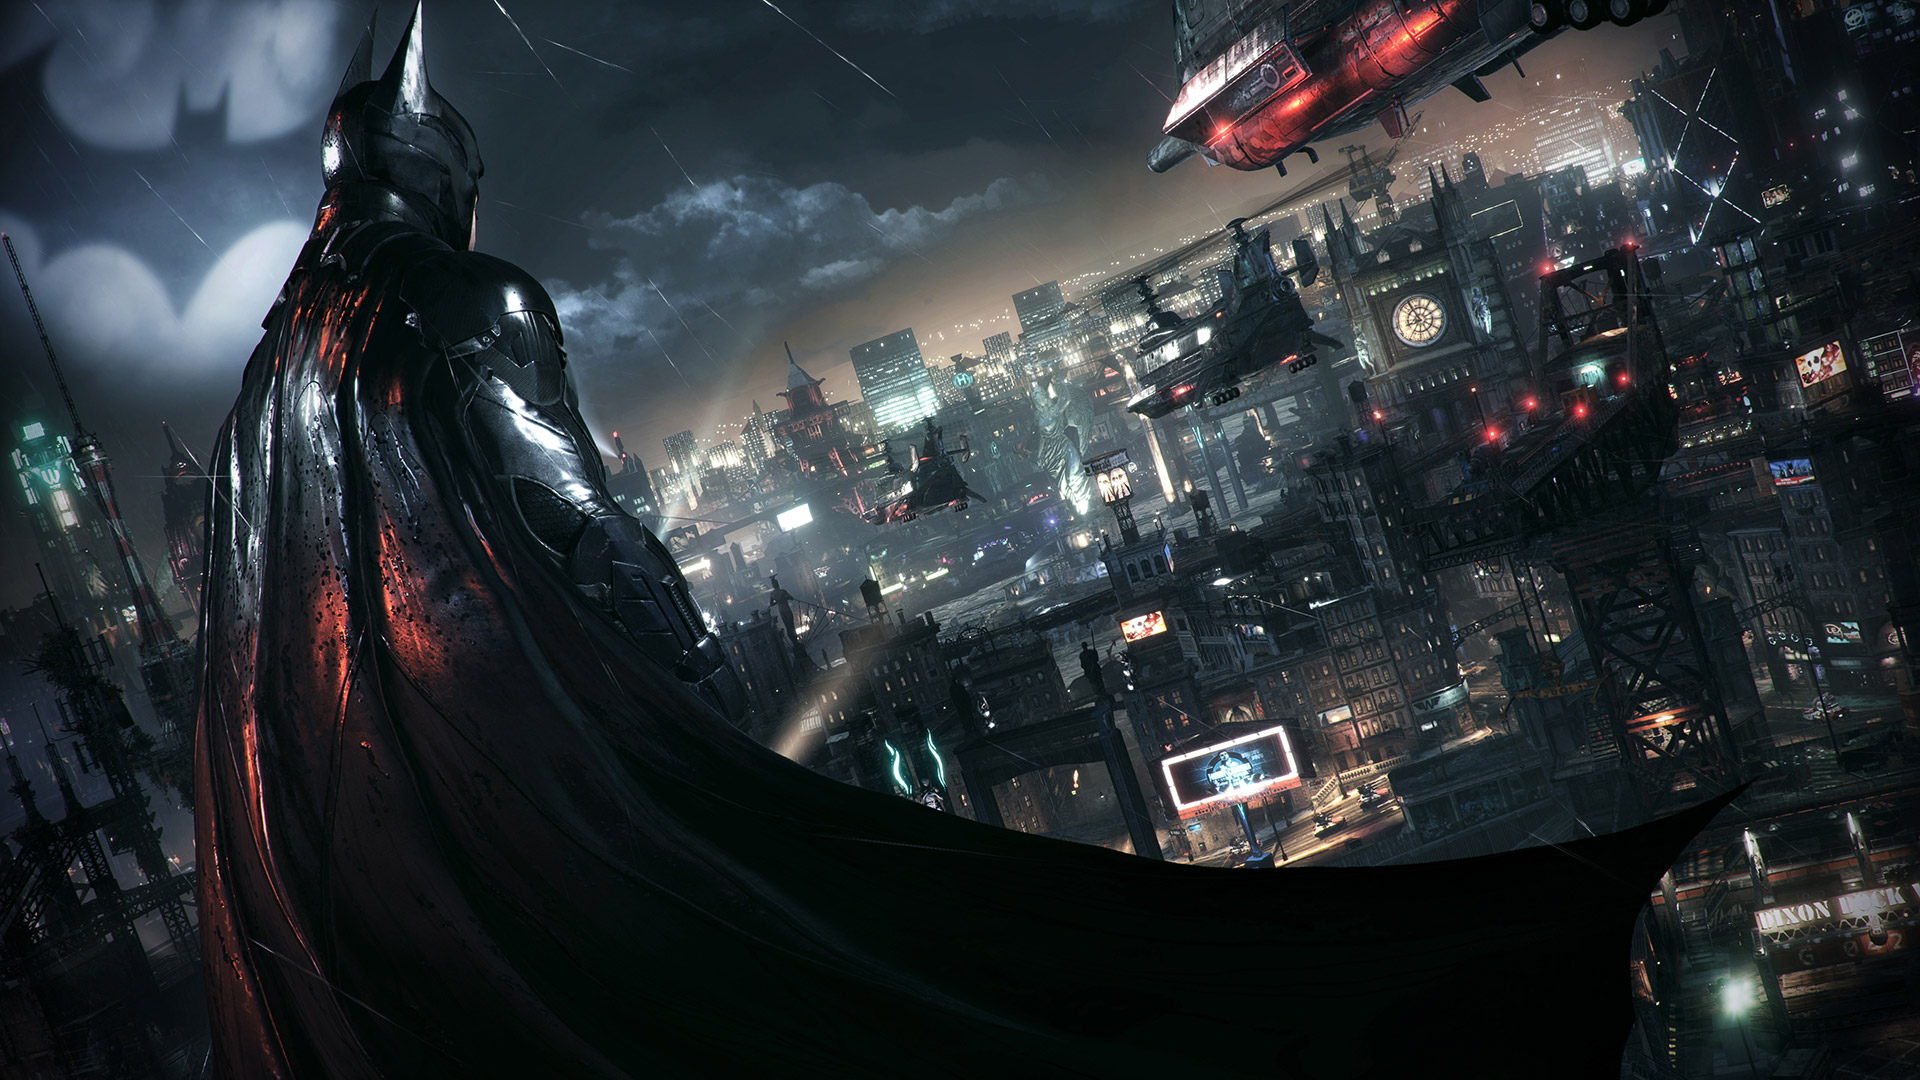 Free Batman: Arkham Knight Wallpaper in 1920x1080